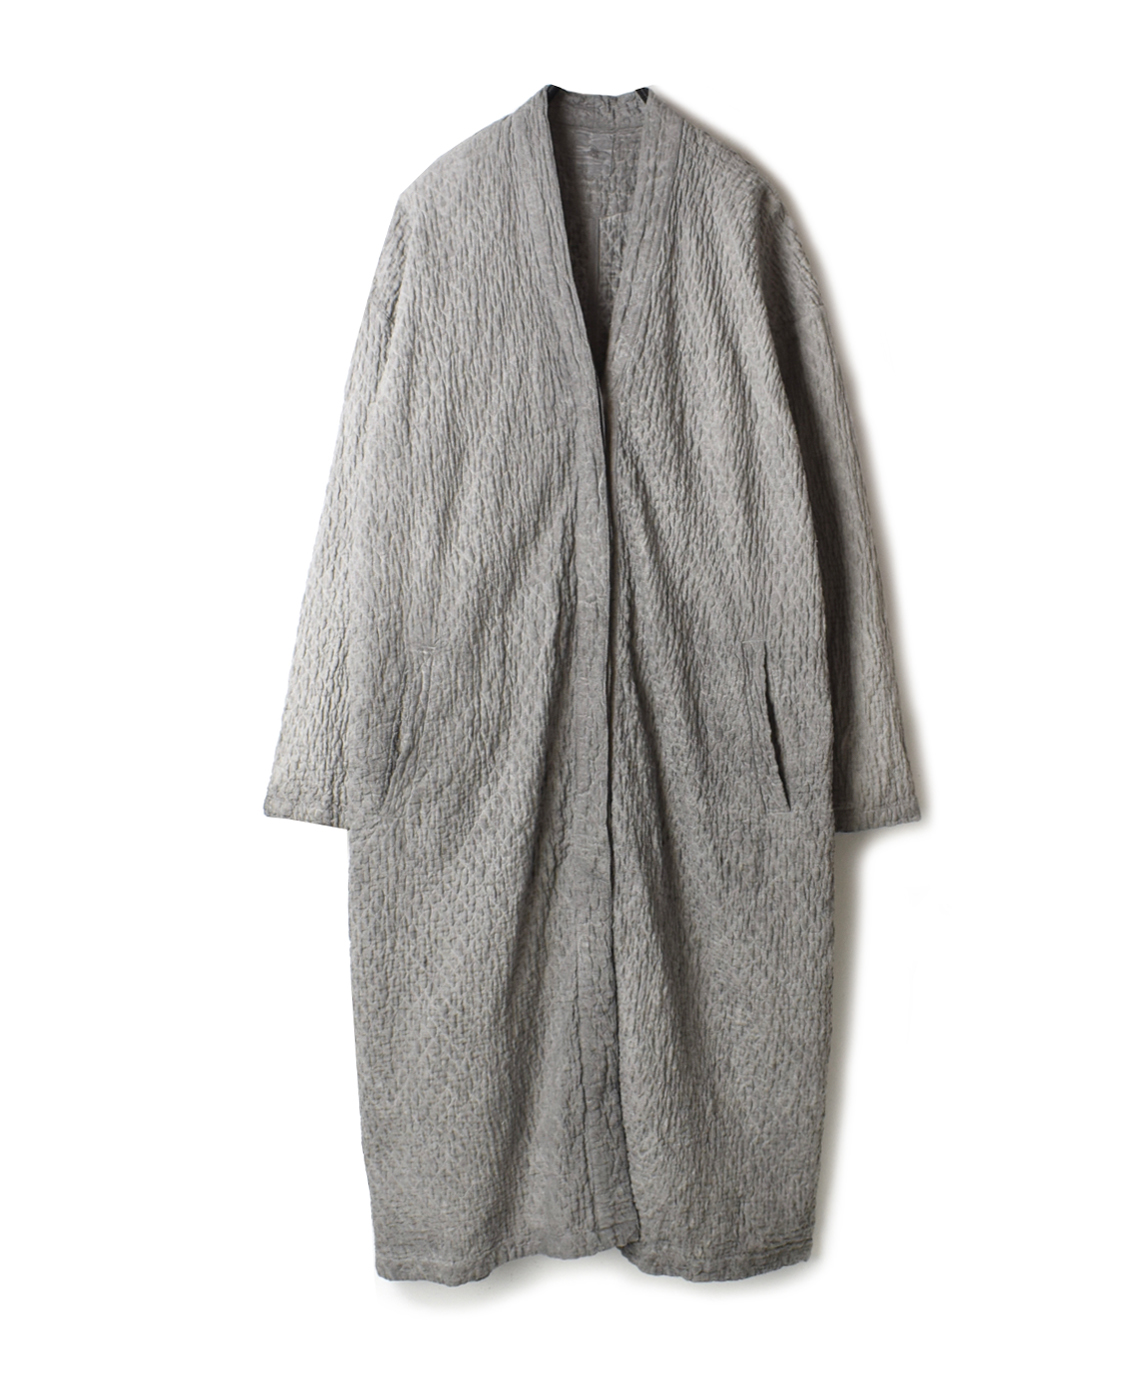 NMDS20002 POWER LOOM LINEN SMALL QUILT V-NECK COAT